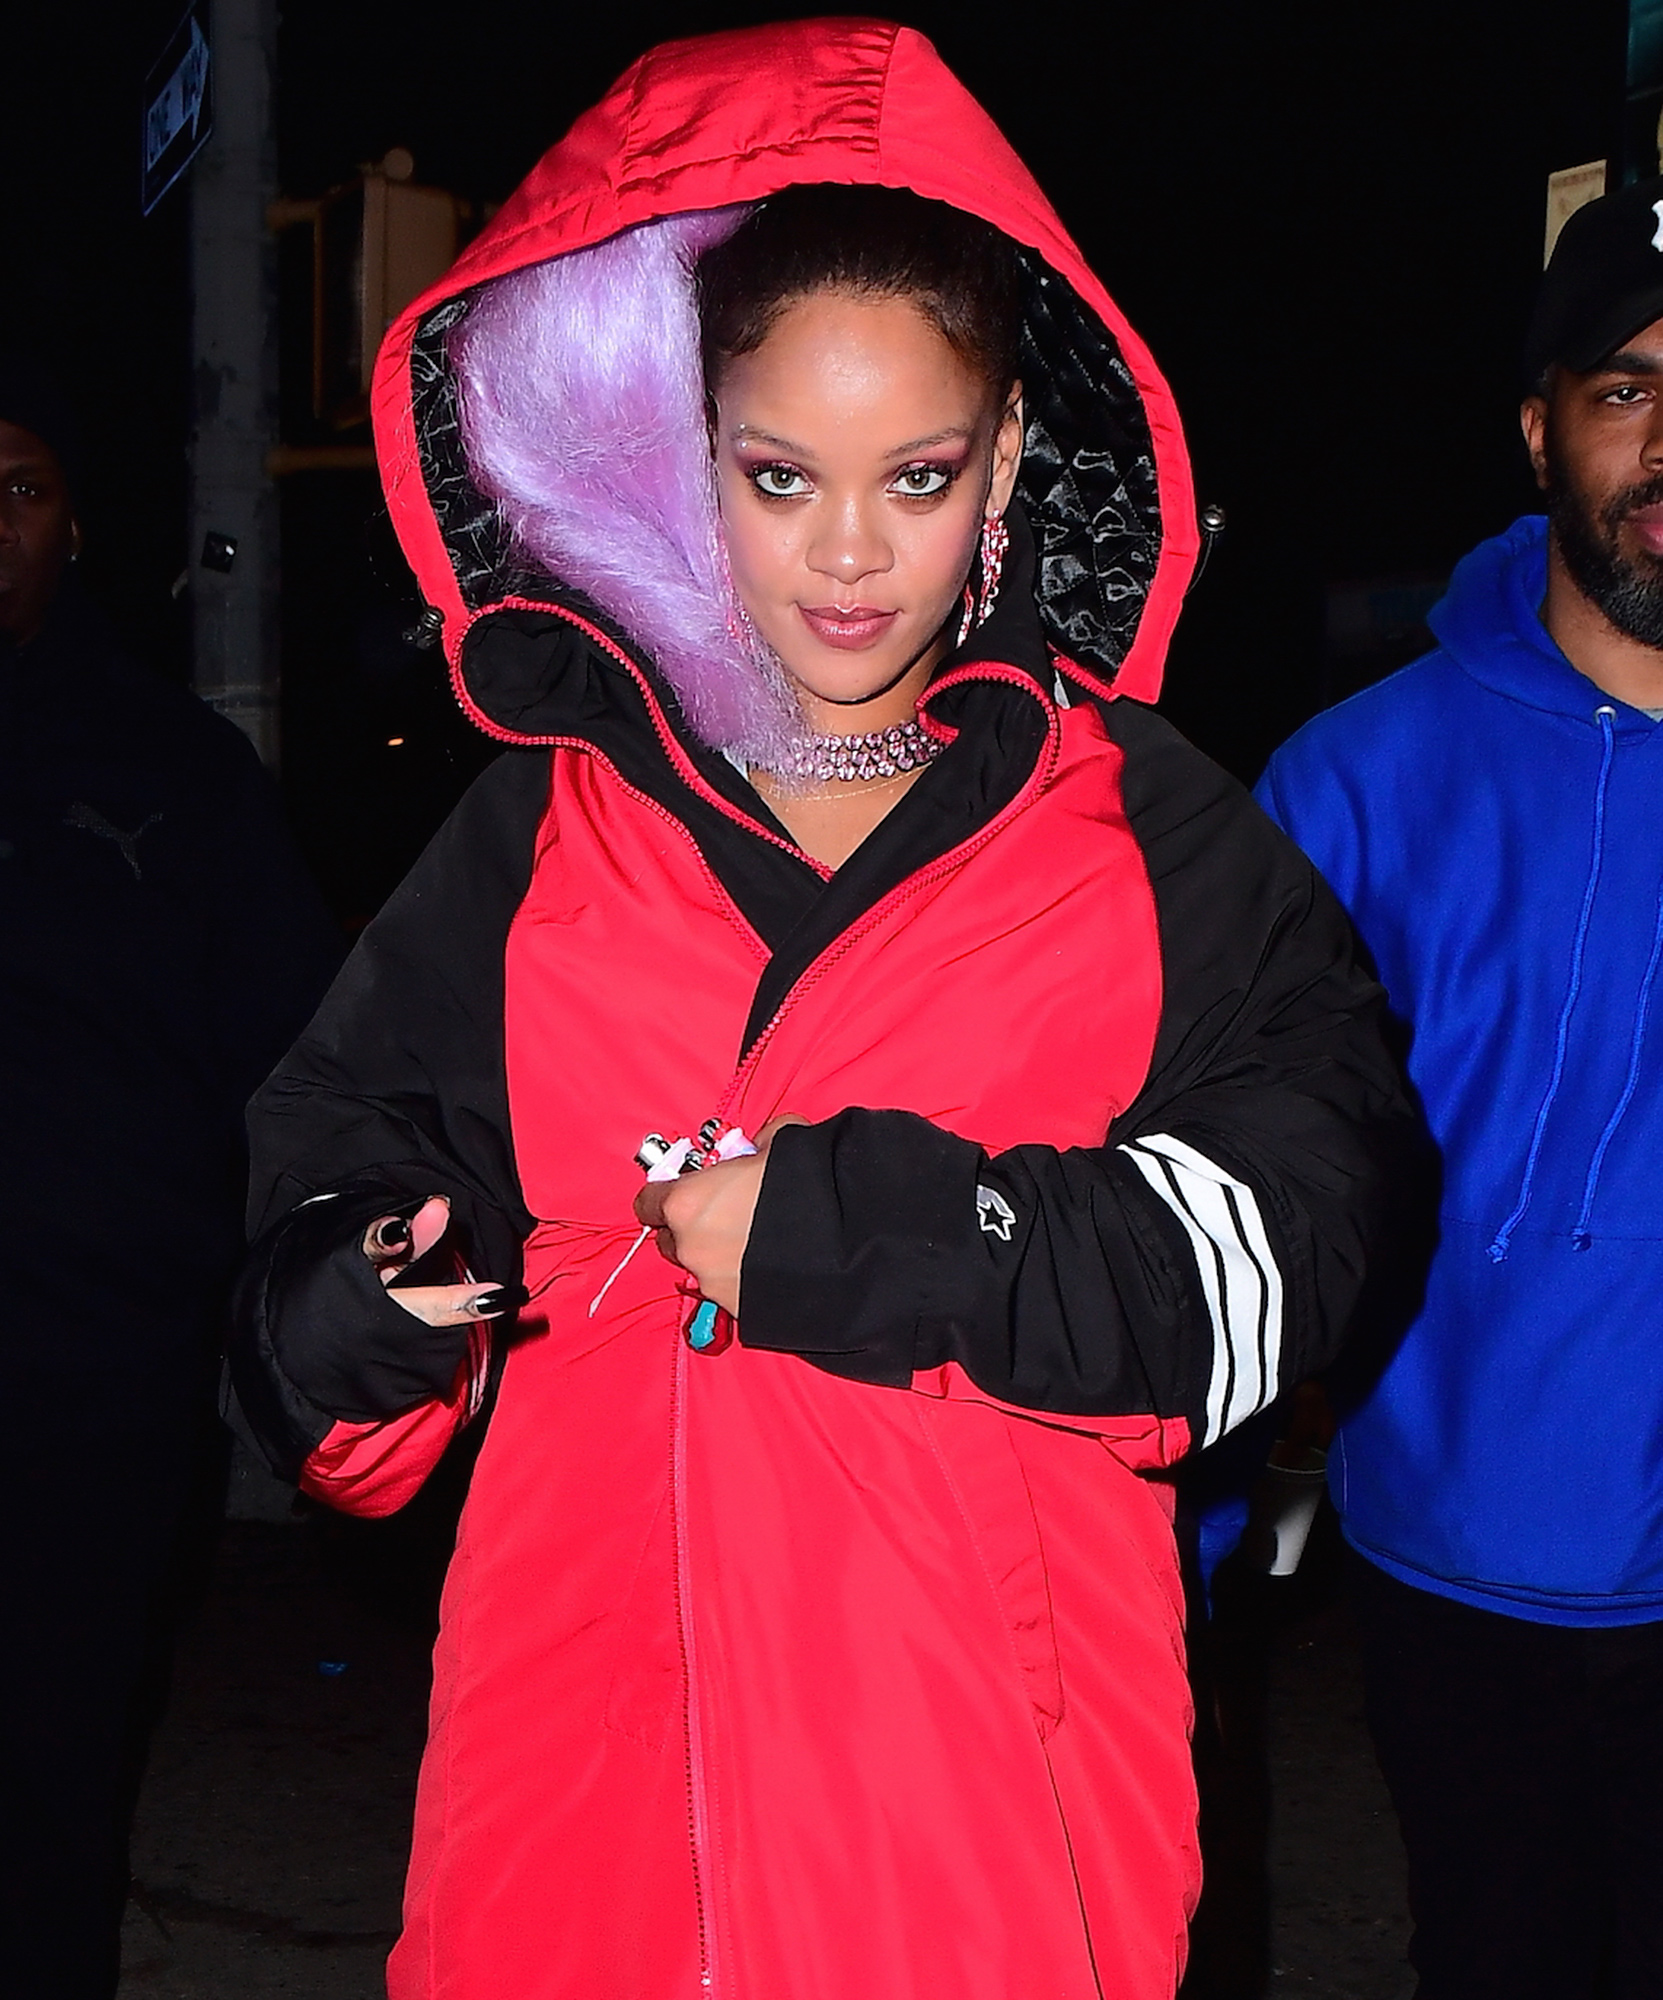 EXCLUSIVE: Rihanna Spotted with a Purple Wig for Paper Magazine Photoshoot